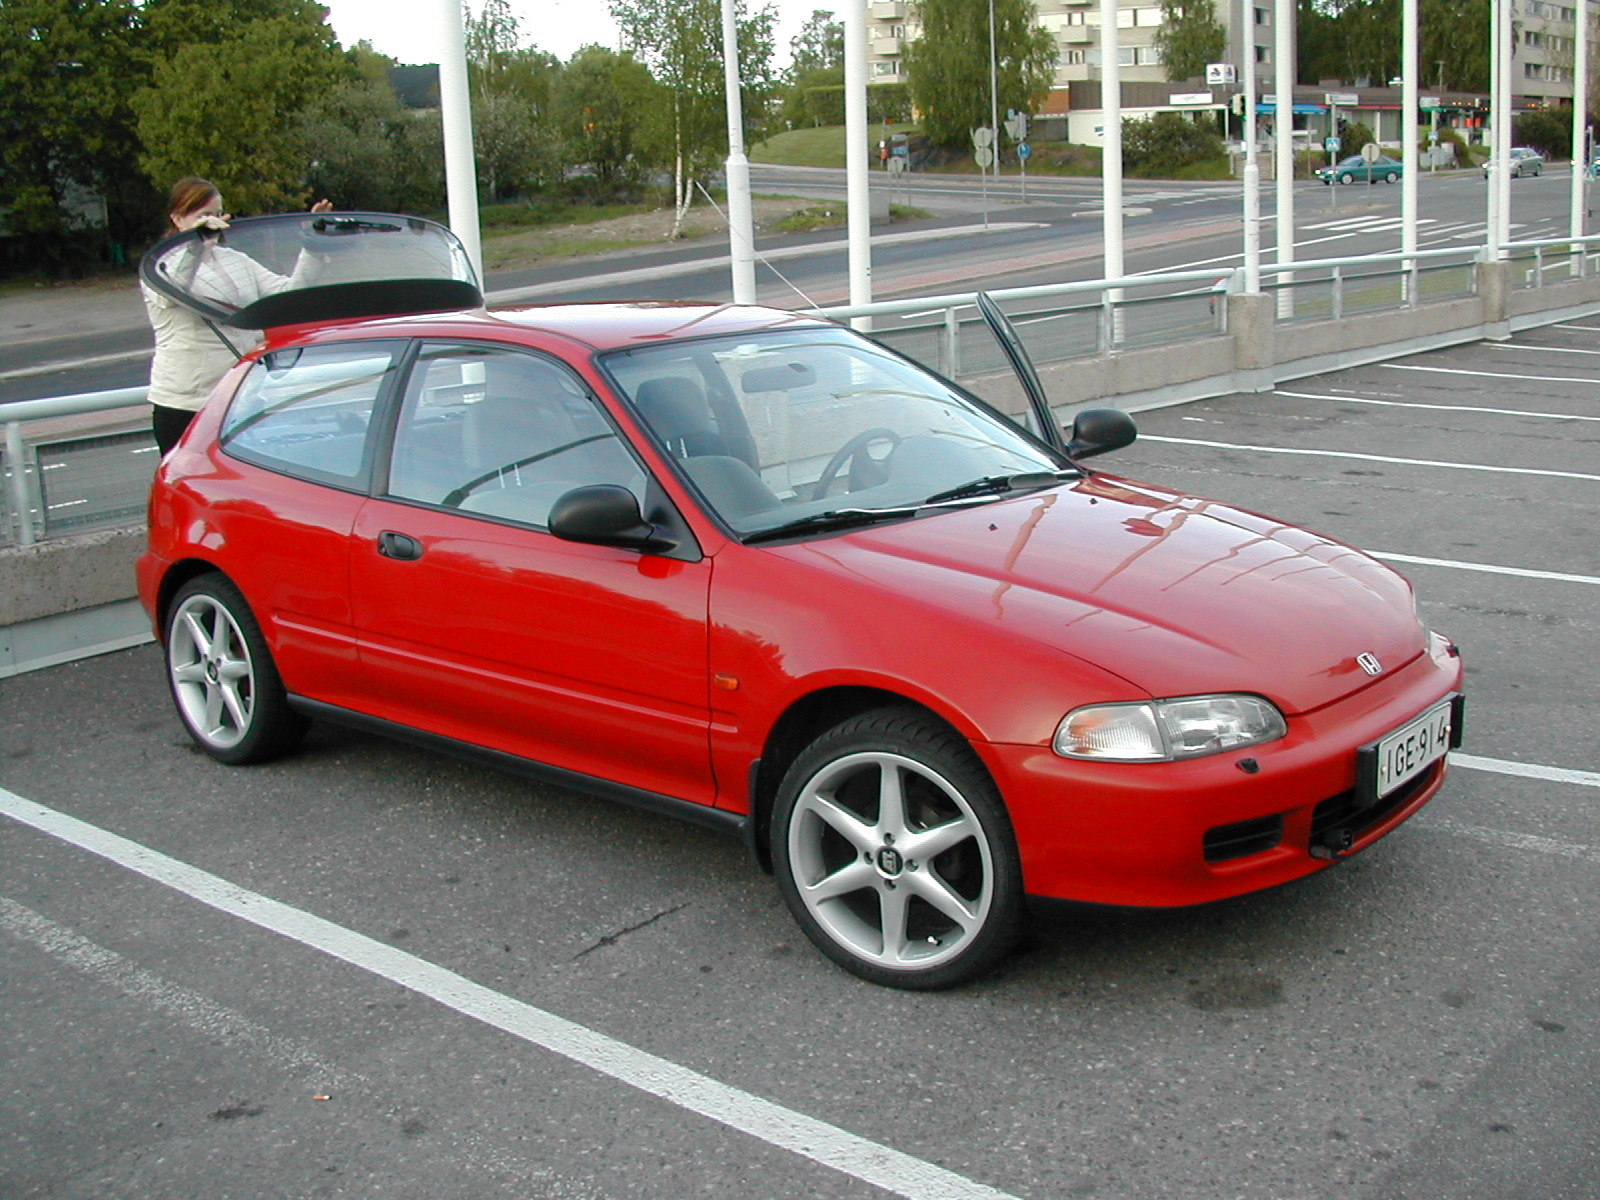 1993 honda civic hatchback - photo #4